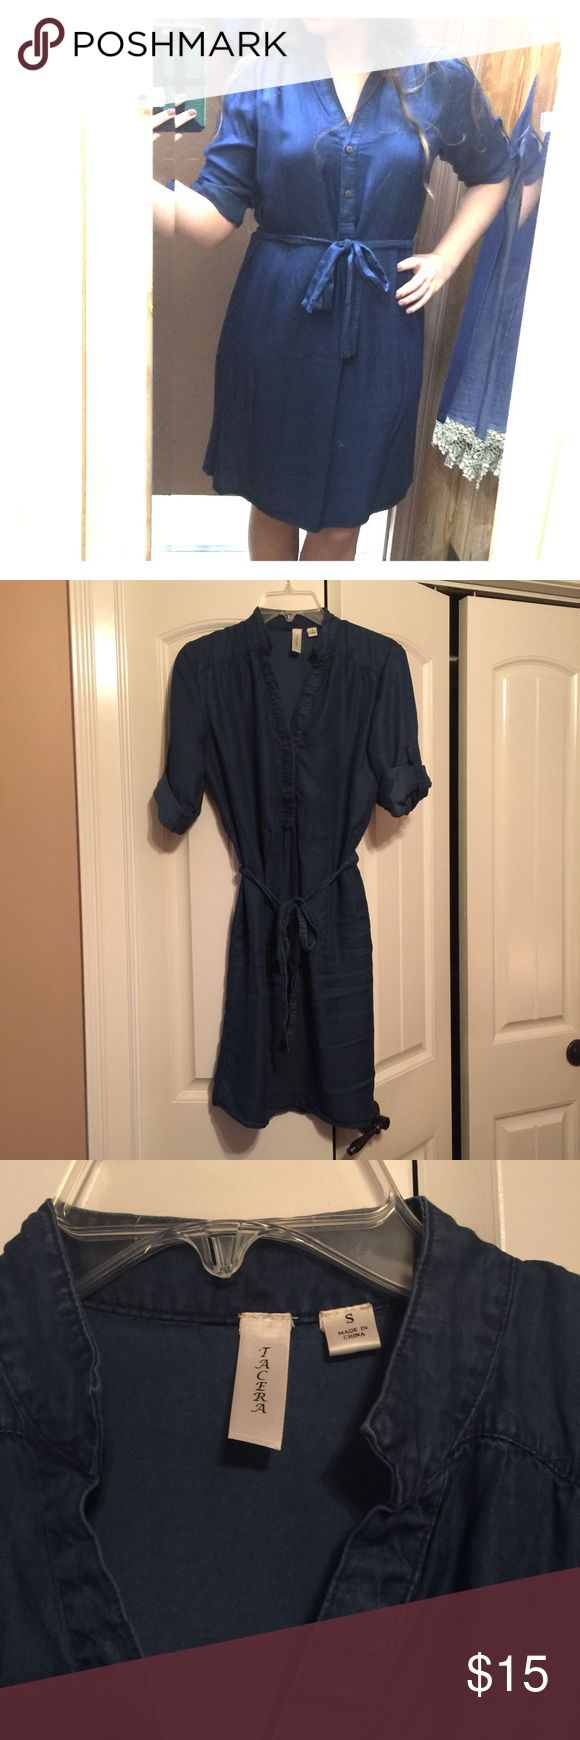 Denim chambray shirt dress Size small, just above knee length, comes with belt! Worn once! Dresses